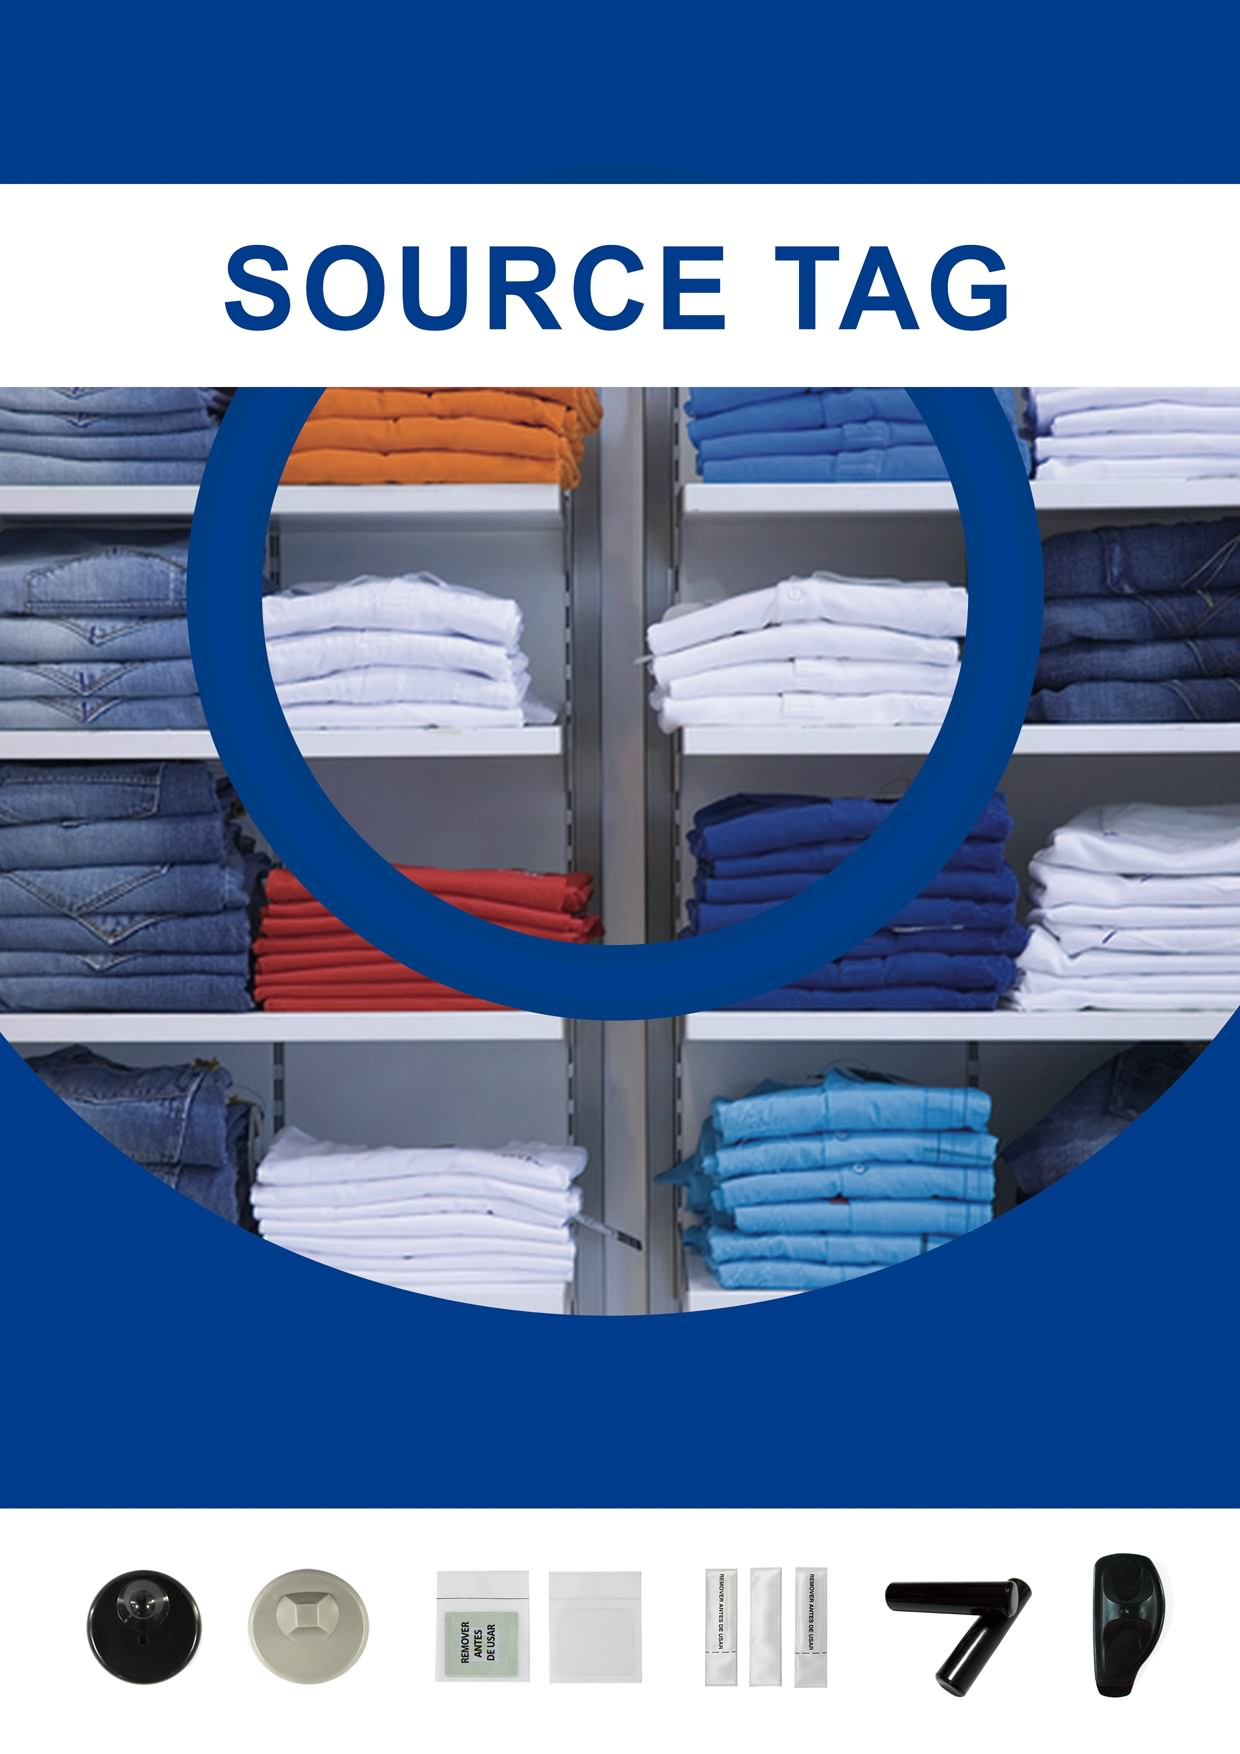 Source Tag